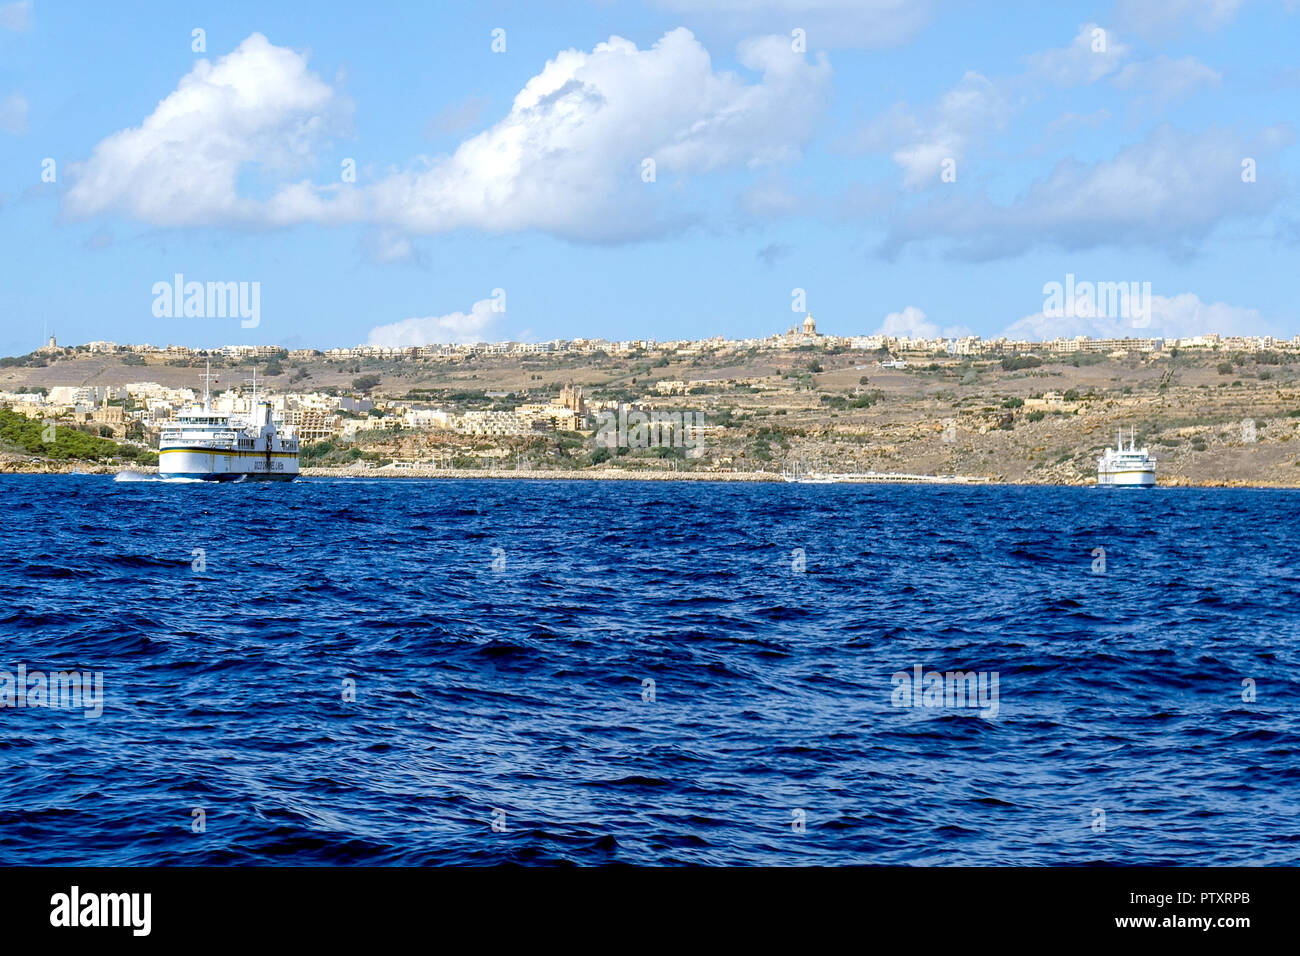 Two Gozo inter-island ferries on passage between Malta and Gozo. Gozo and MGarr ferry port on horizon - Stock Image